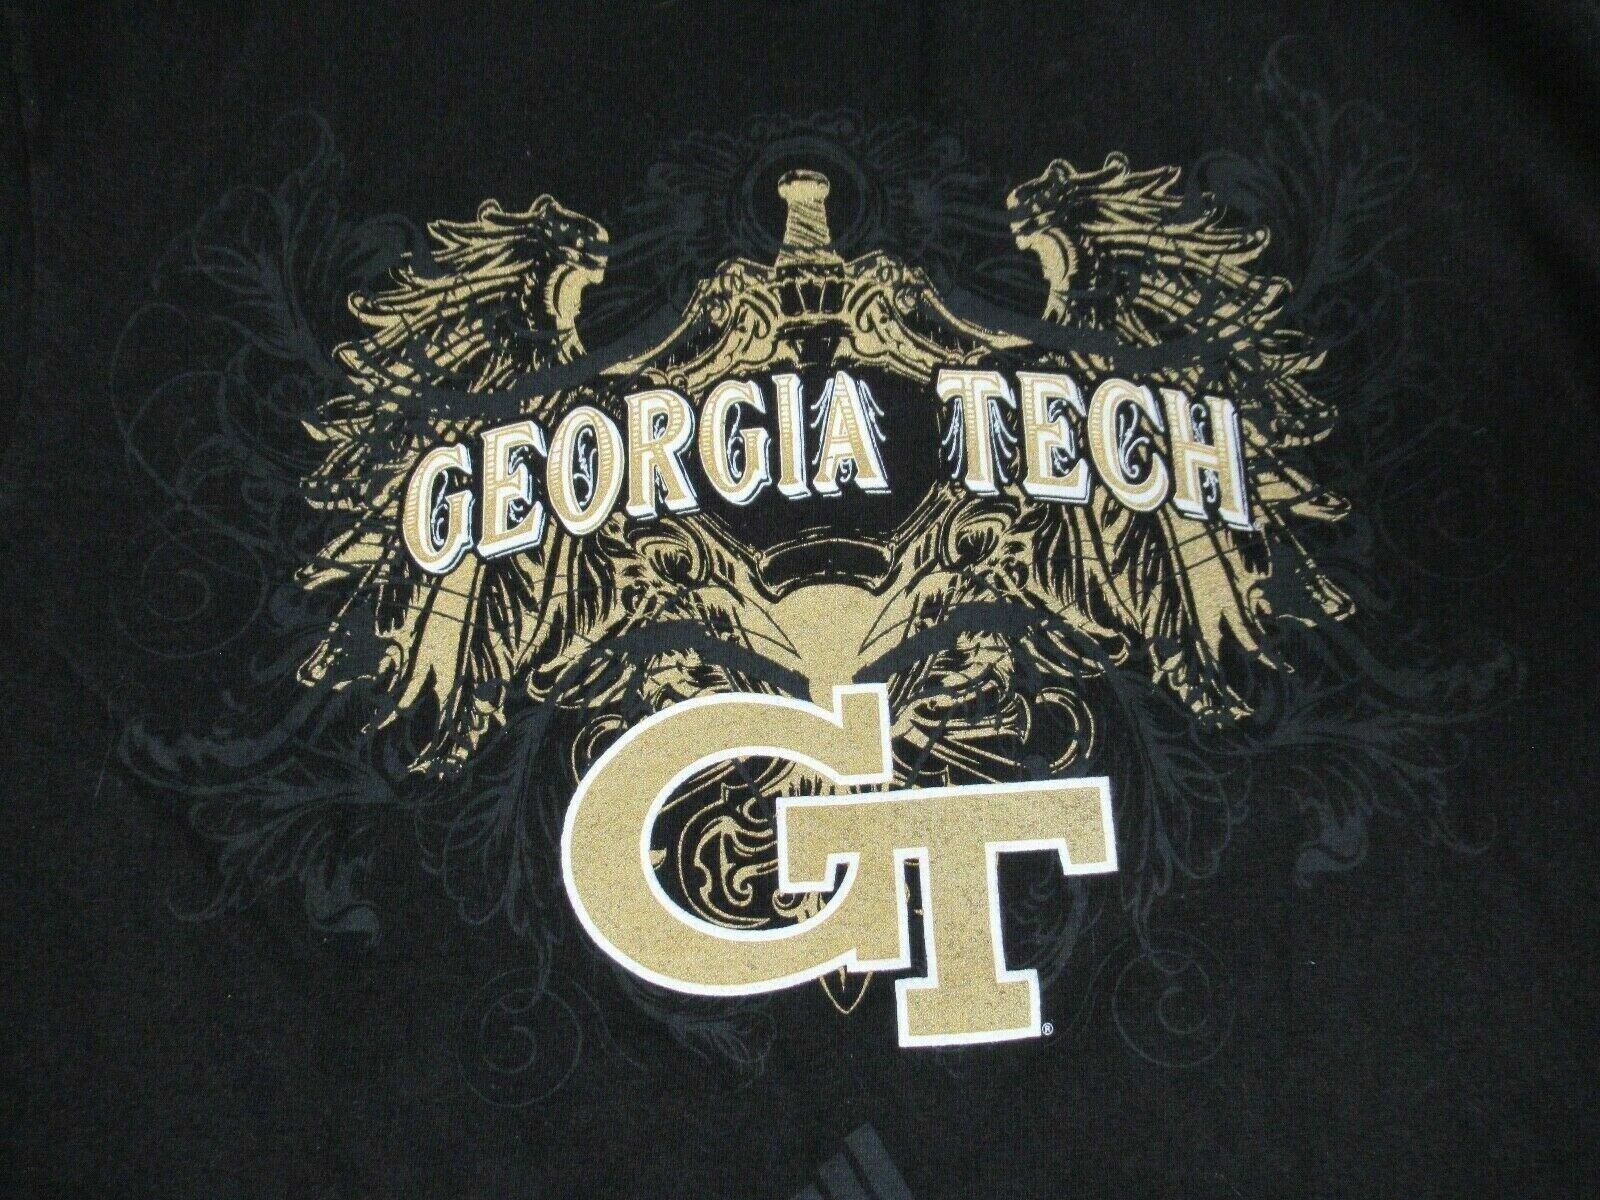 Adidas georgia tech ailes or accents ailes letters-black m t-shirt -a1347